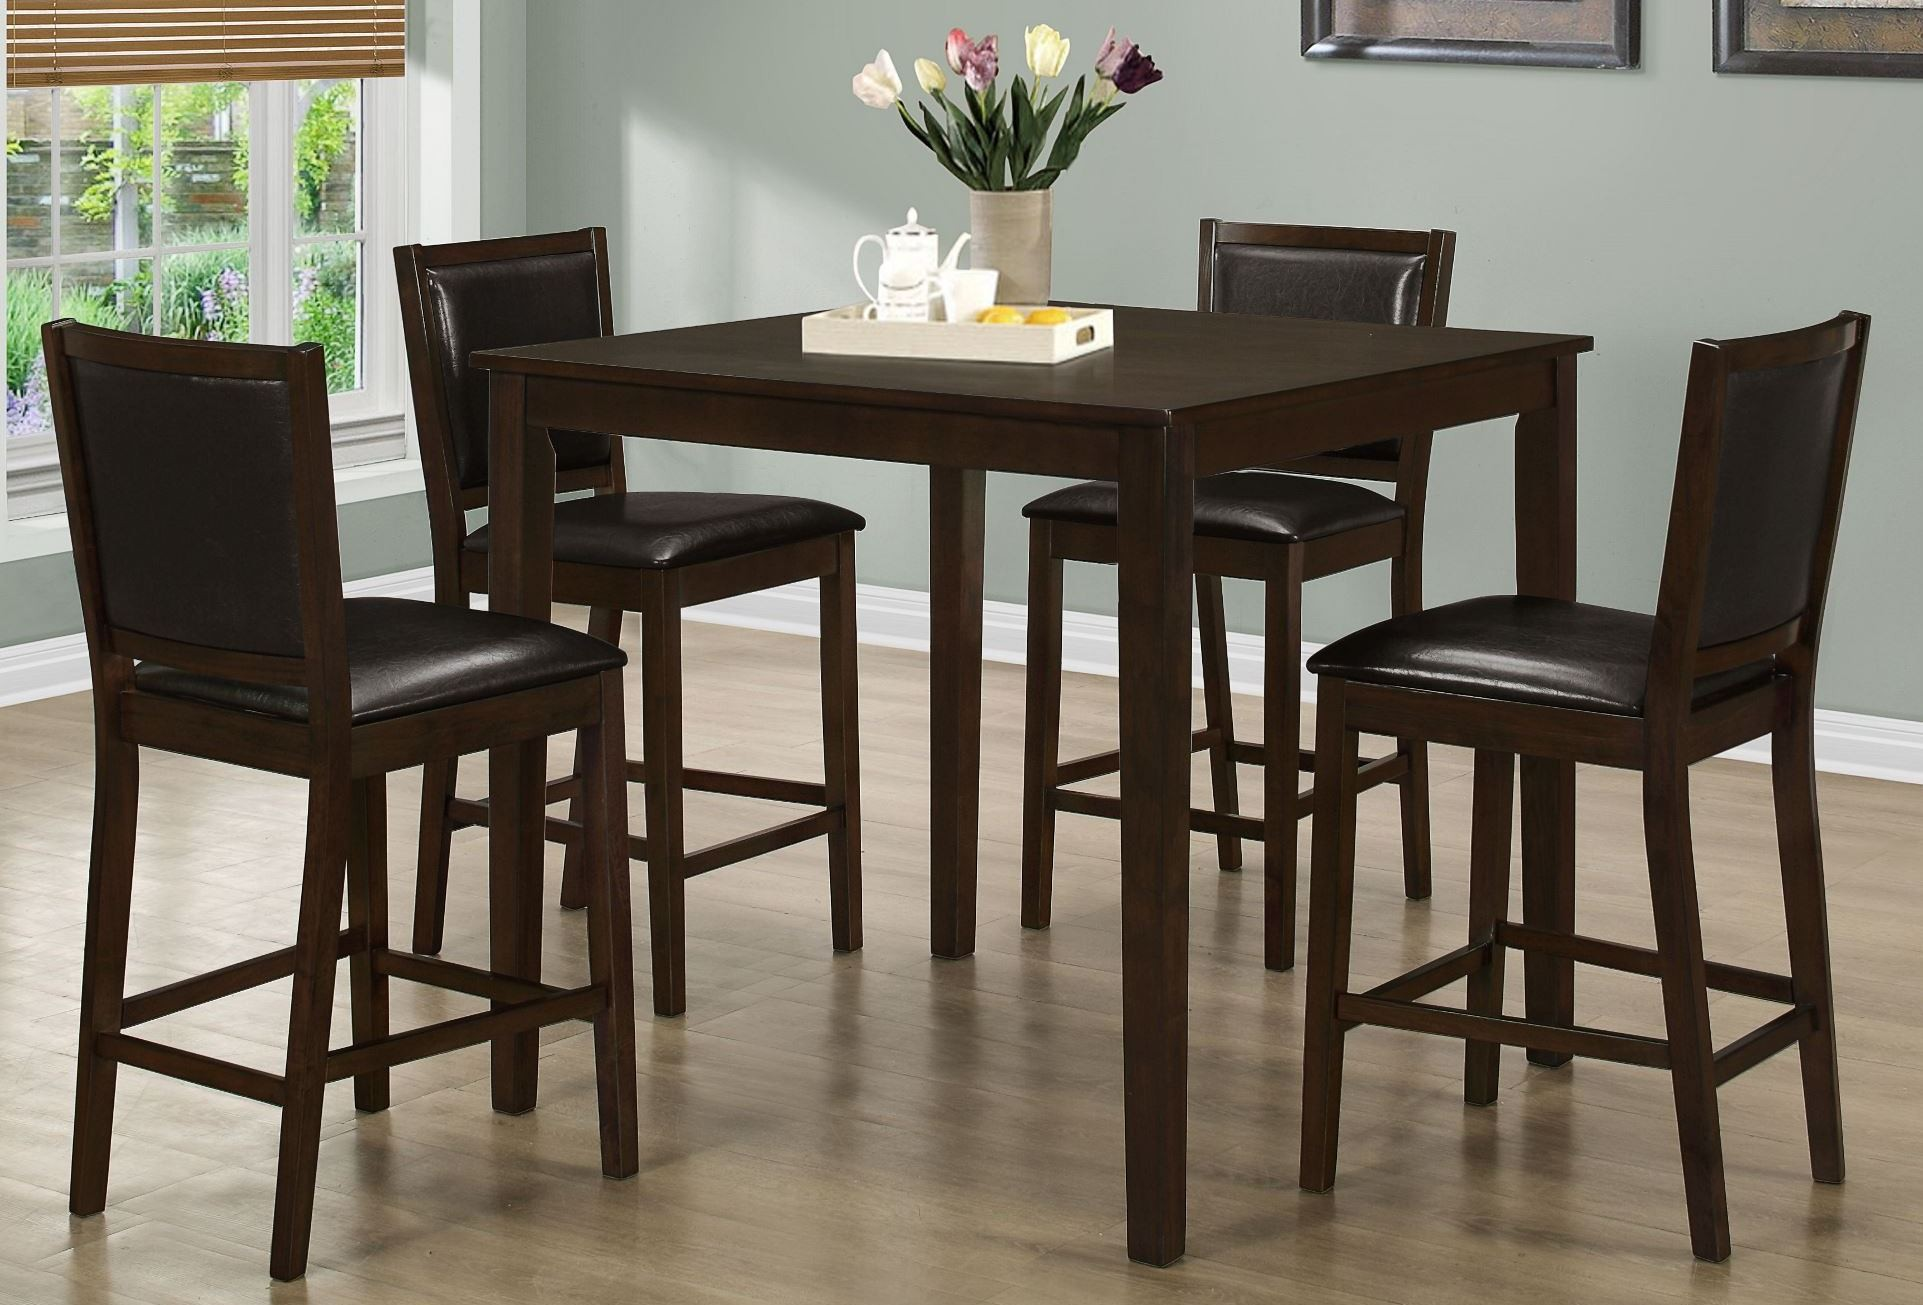 Walnut 5 piece counter height dining room set 1549 monarch for 2 piece dining room set